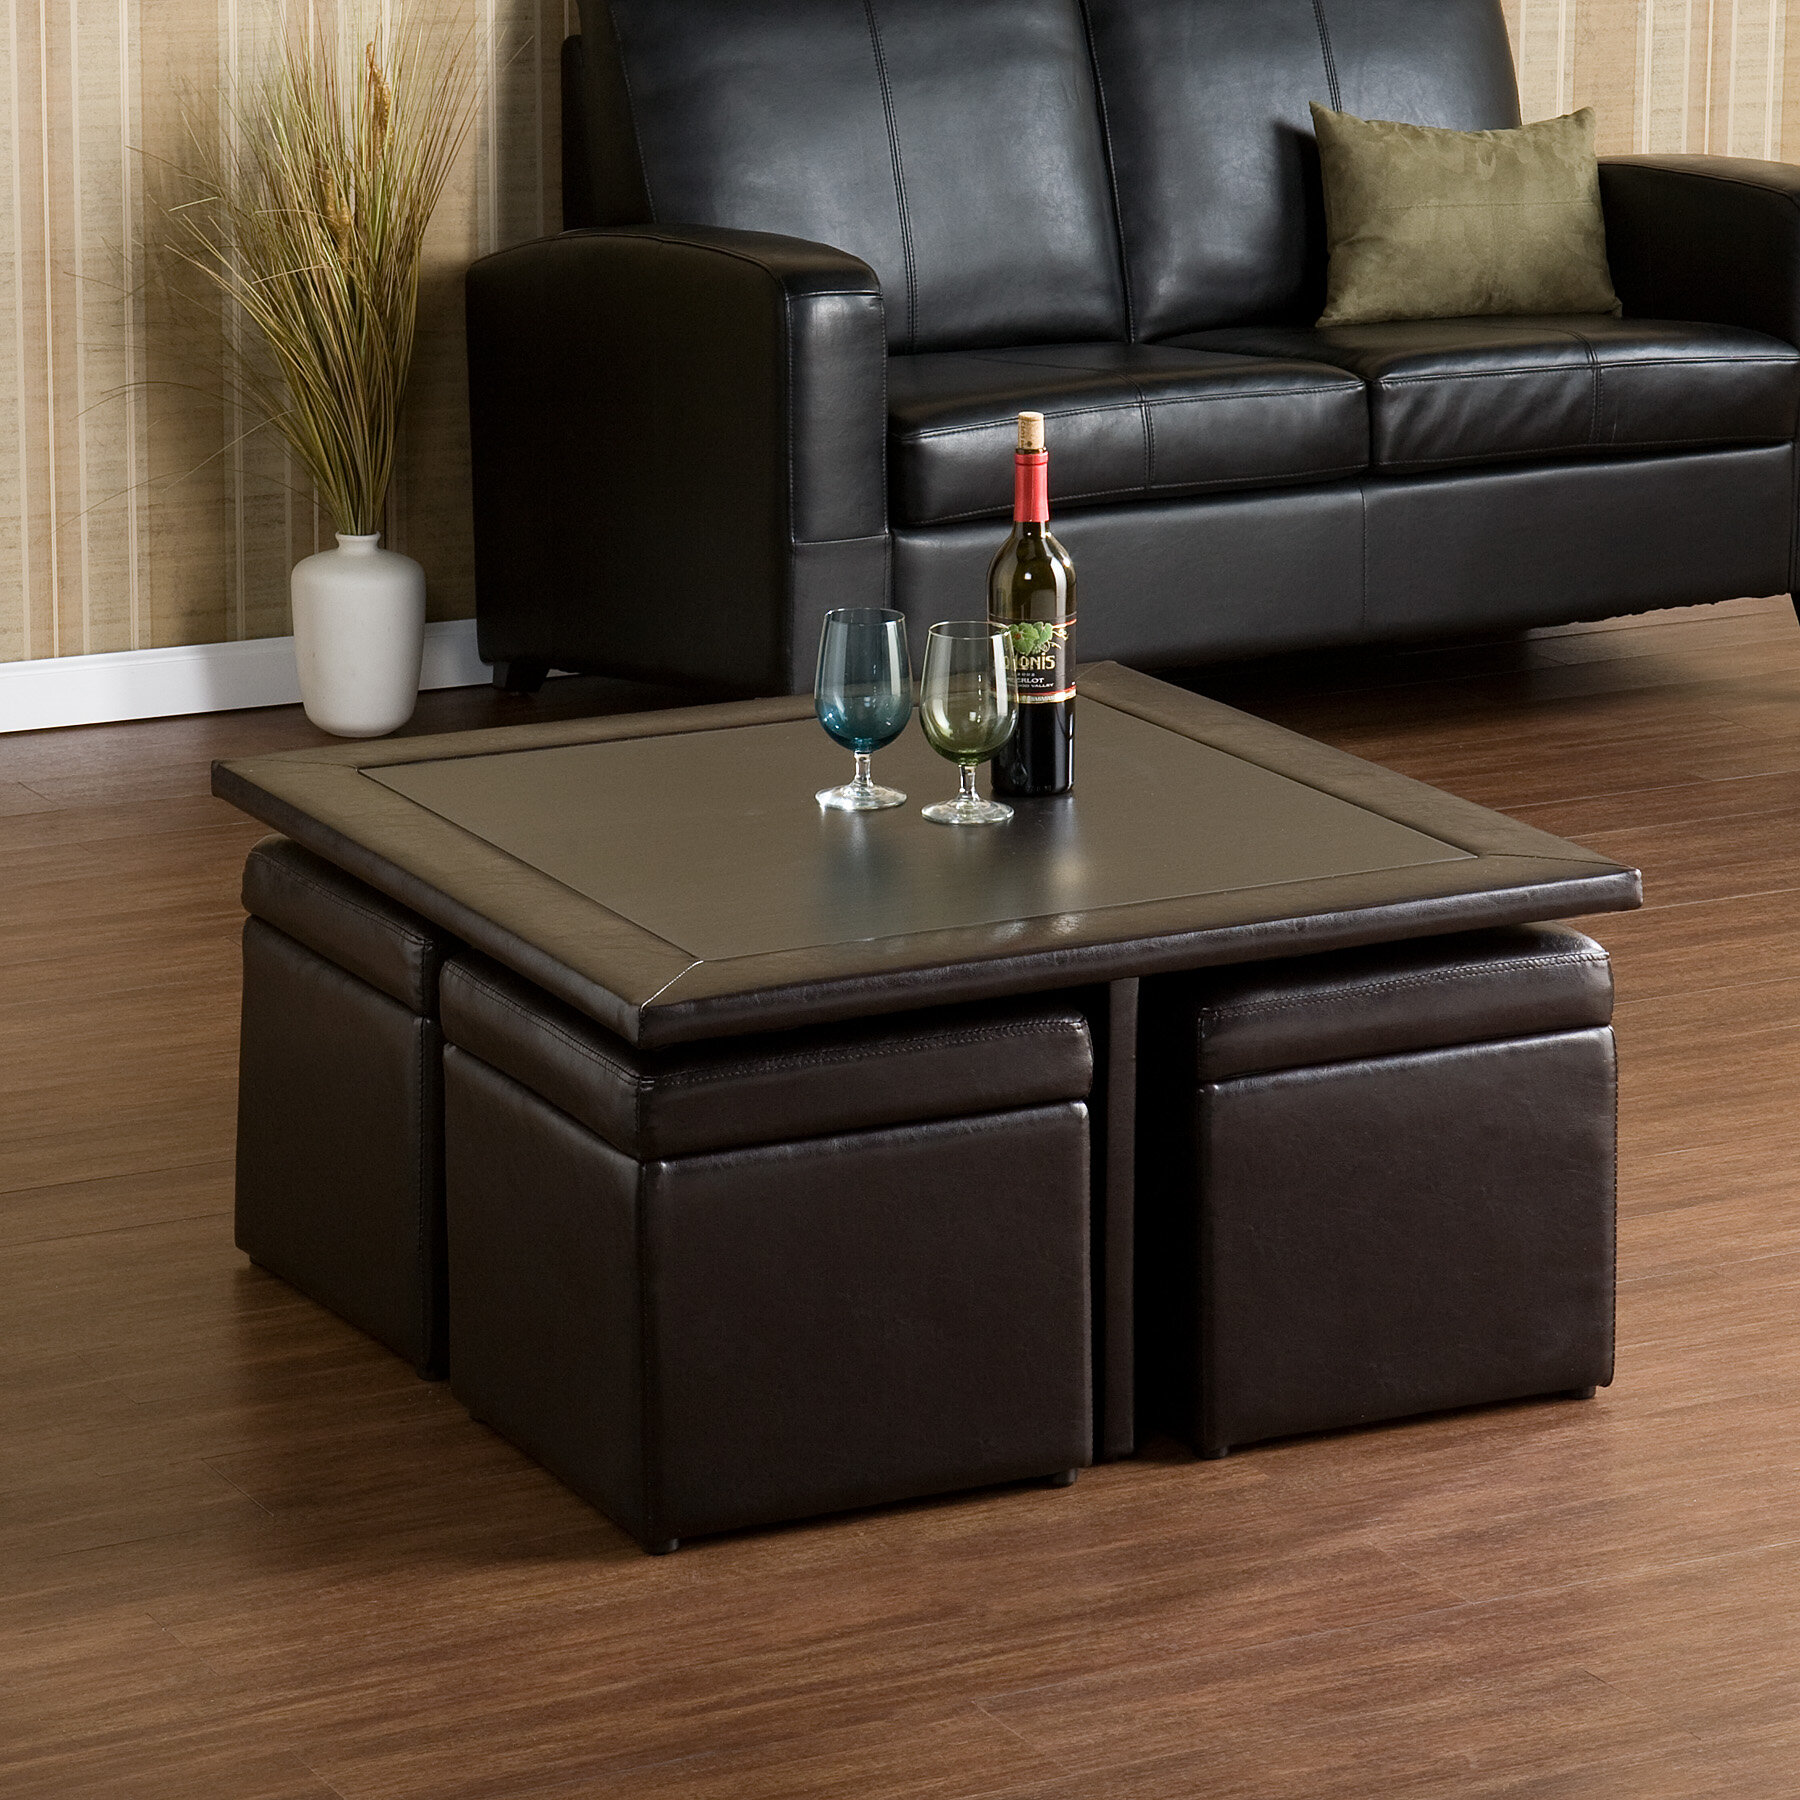 Coffee Table With Stools.Rithland Coffee Table With Lift Top Stools